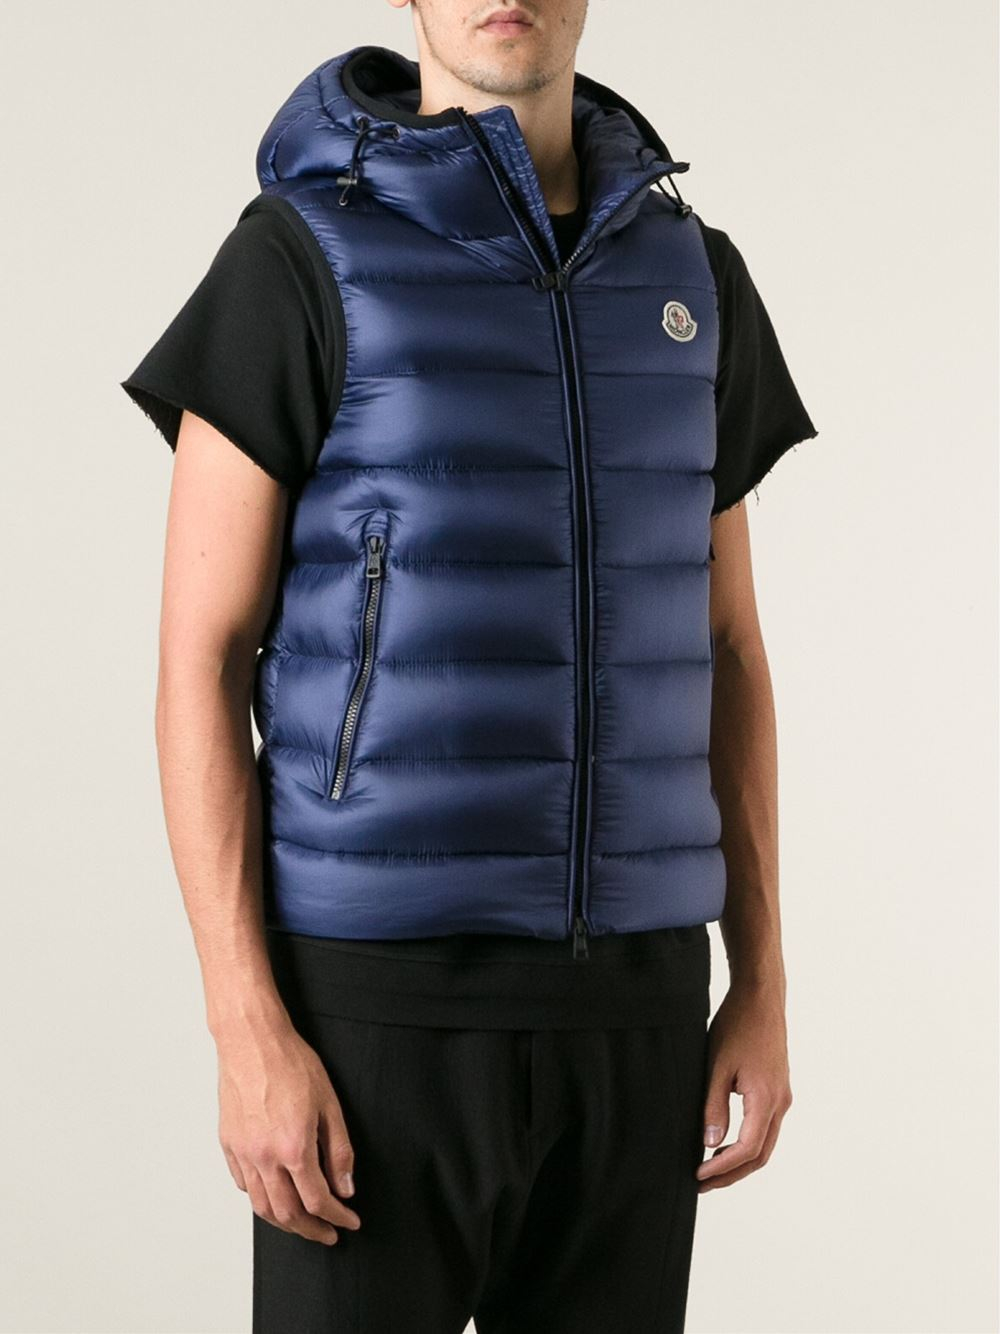 moncler gilet with hood